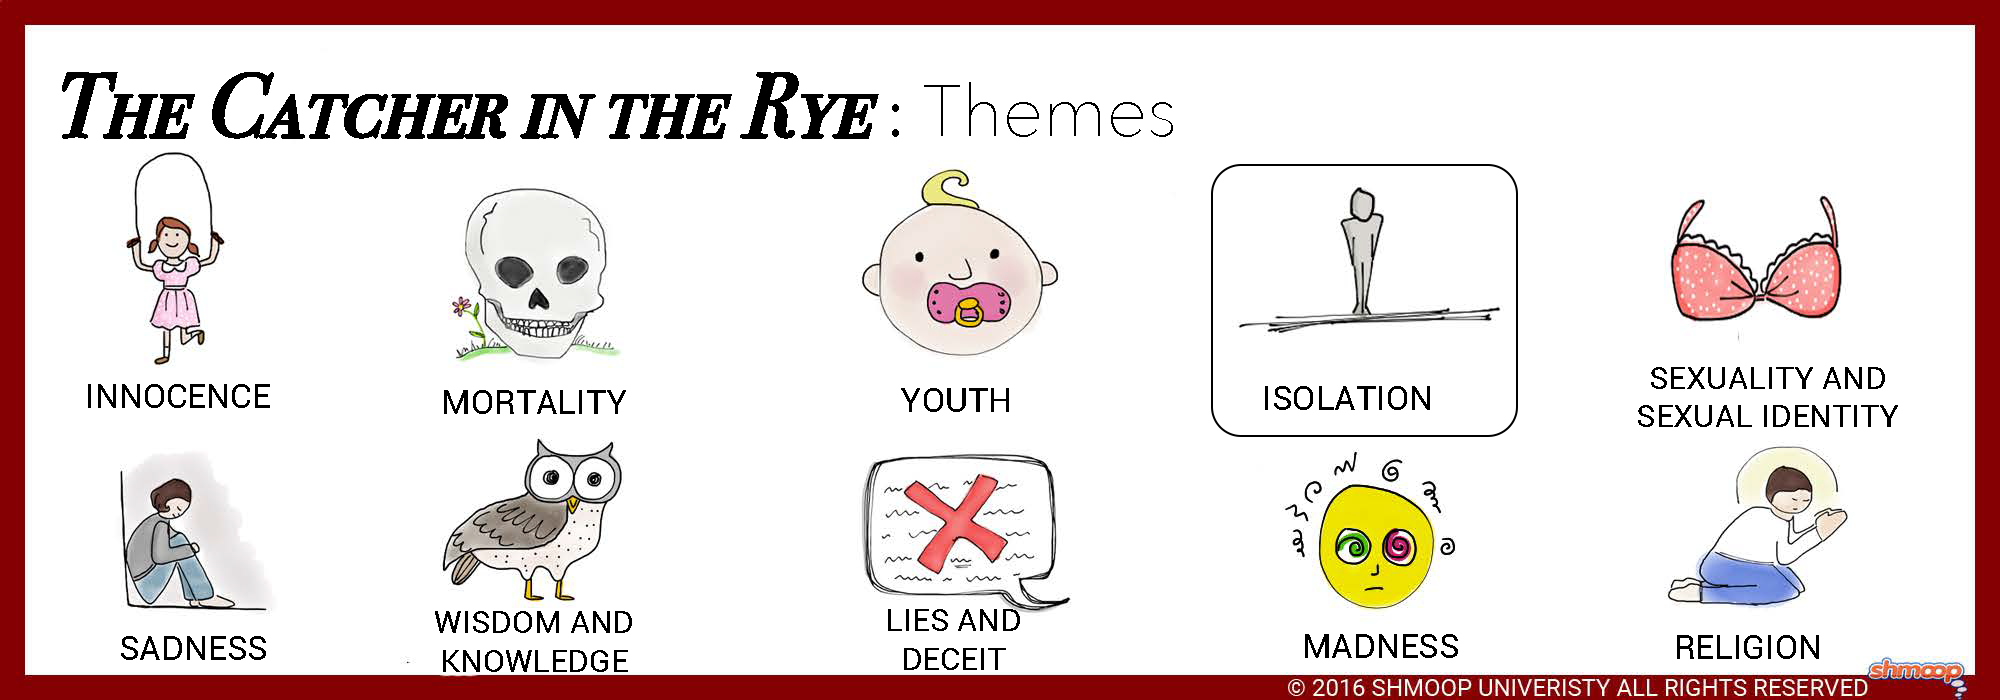 the catcher in the rye essay introduction Get started analyze the theme of childhood innocence in the novel the catcher in the rye using two of the major symbols from the story the major symbols are hunting.